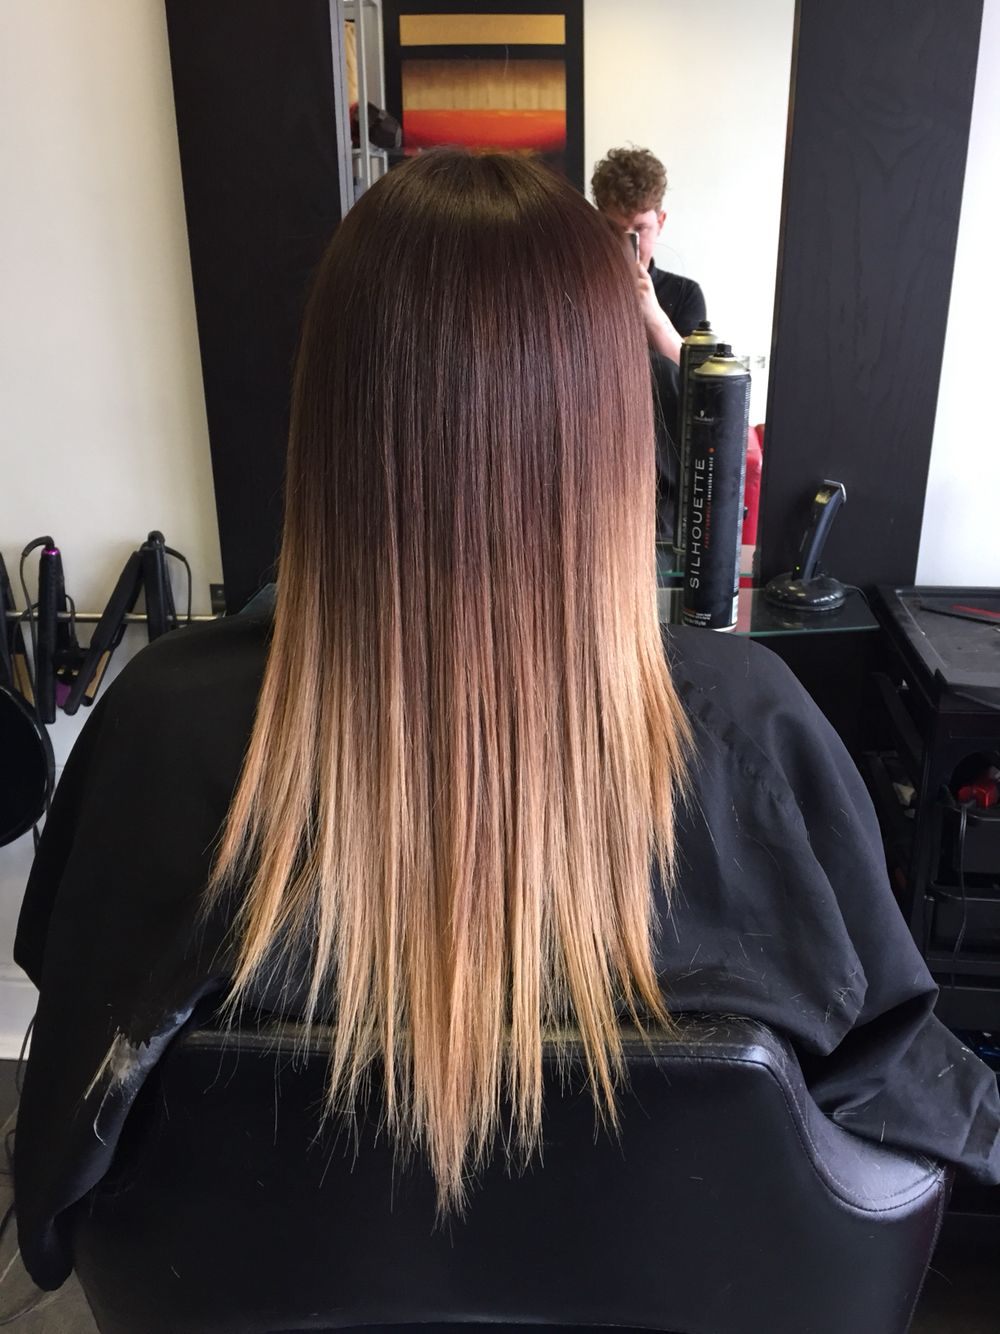 Watch The 5 Rules of OmbréHair video